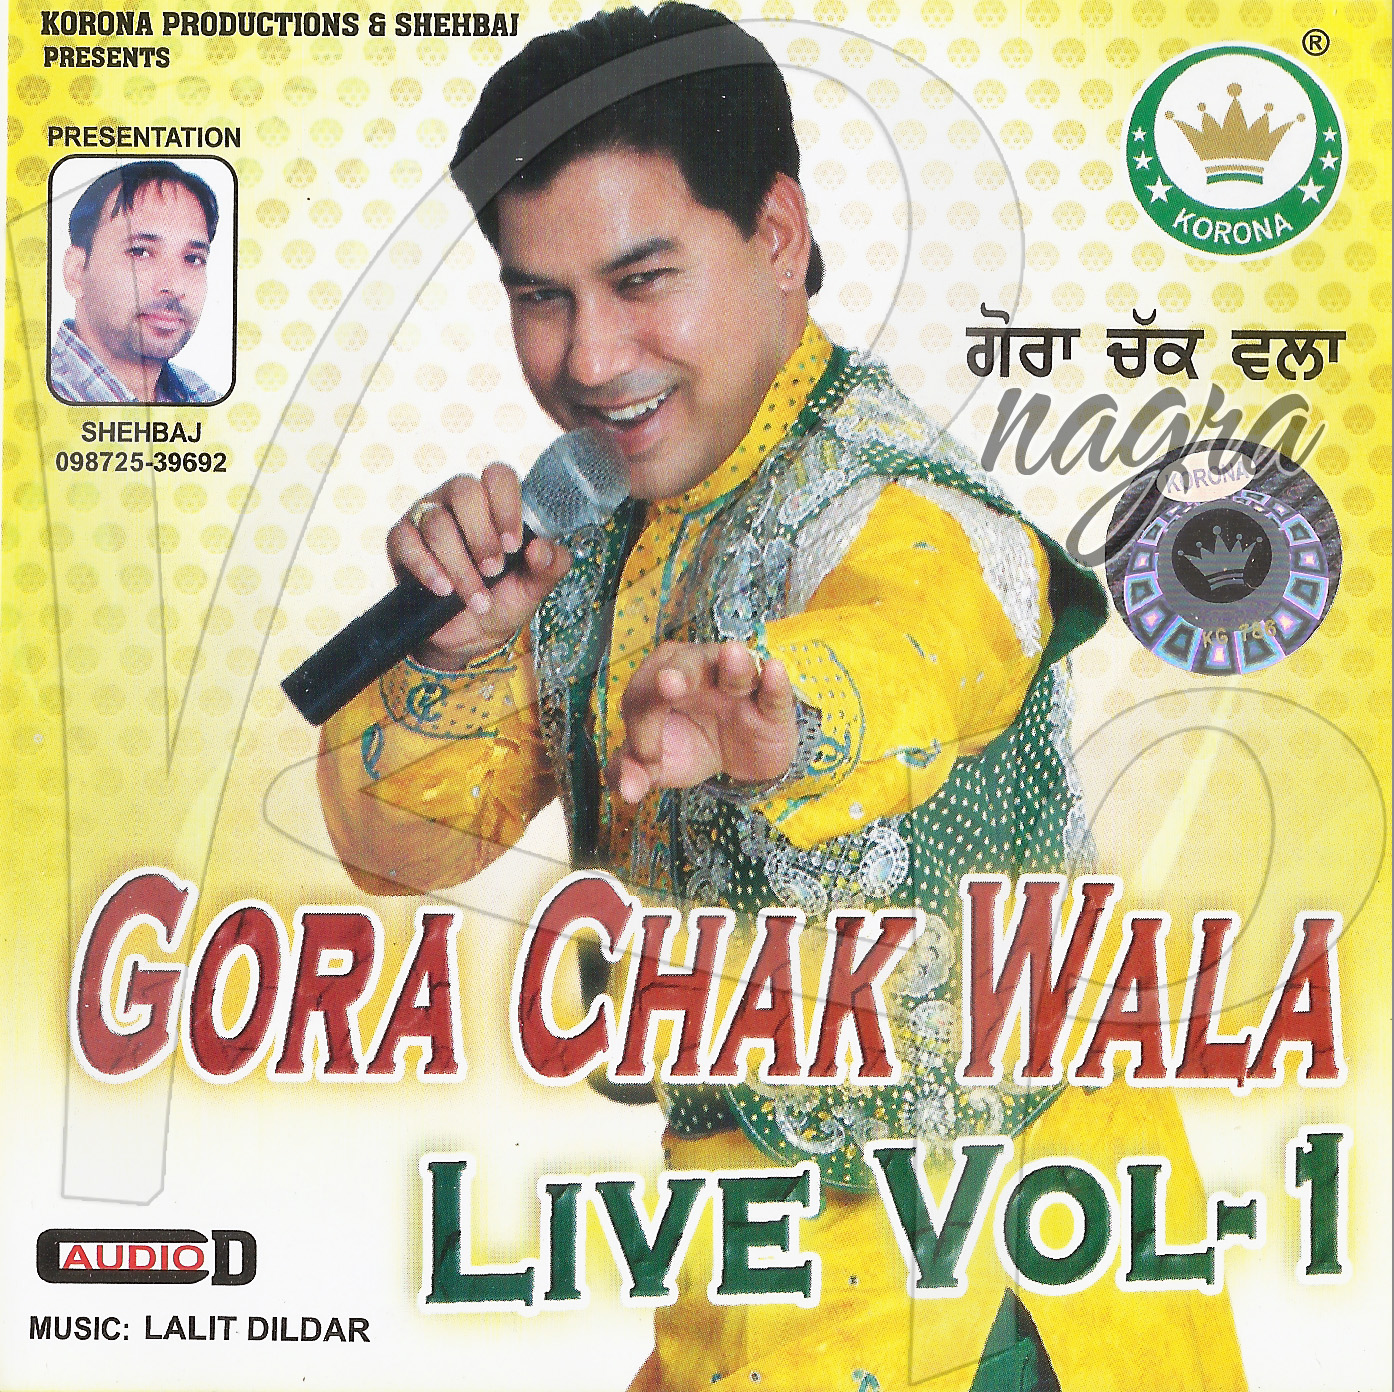 Gora Chak Wala – Live Vol.1 Mp3 Songs Free Download